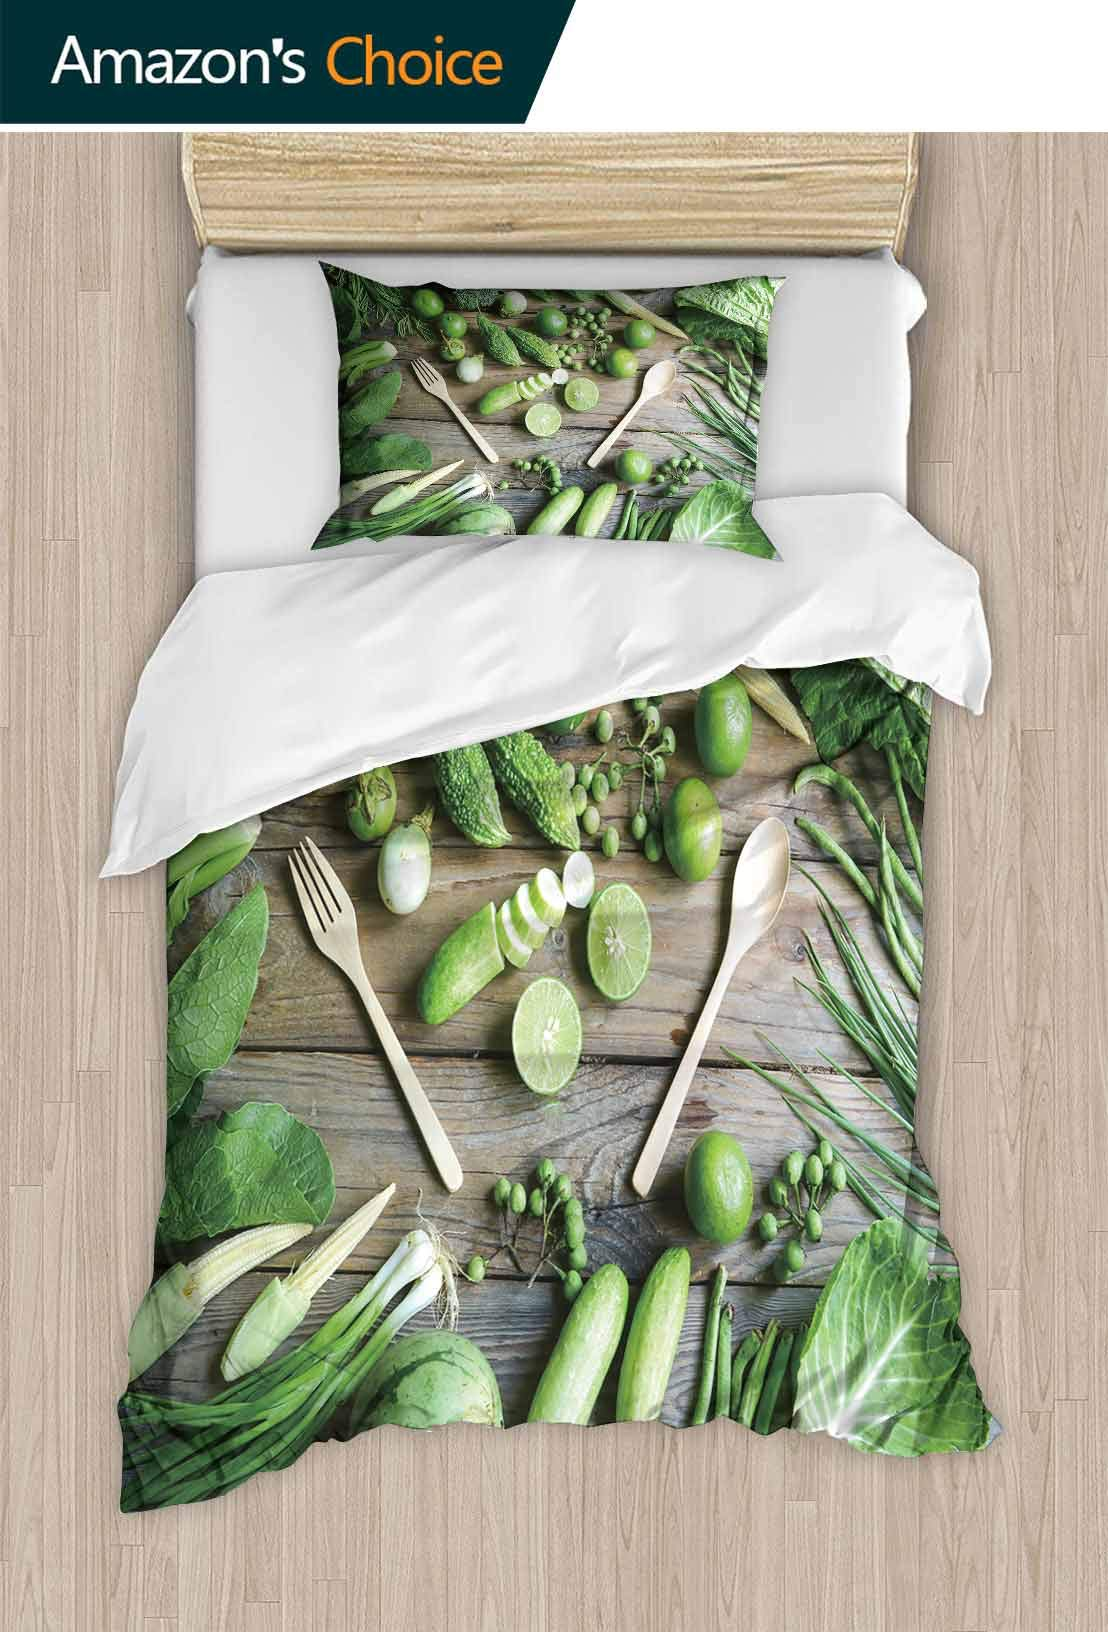 PRUNUSHOME Softest Bedding organicgreen Vegetables Fork Spoon on Wooden Floor Soft and Comfortable California King